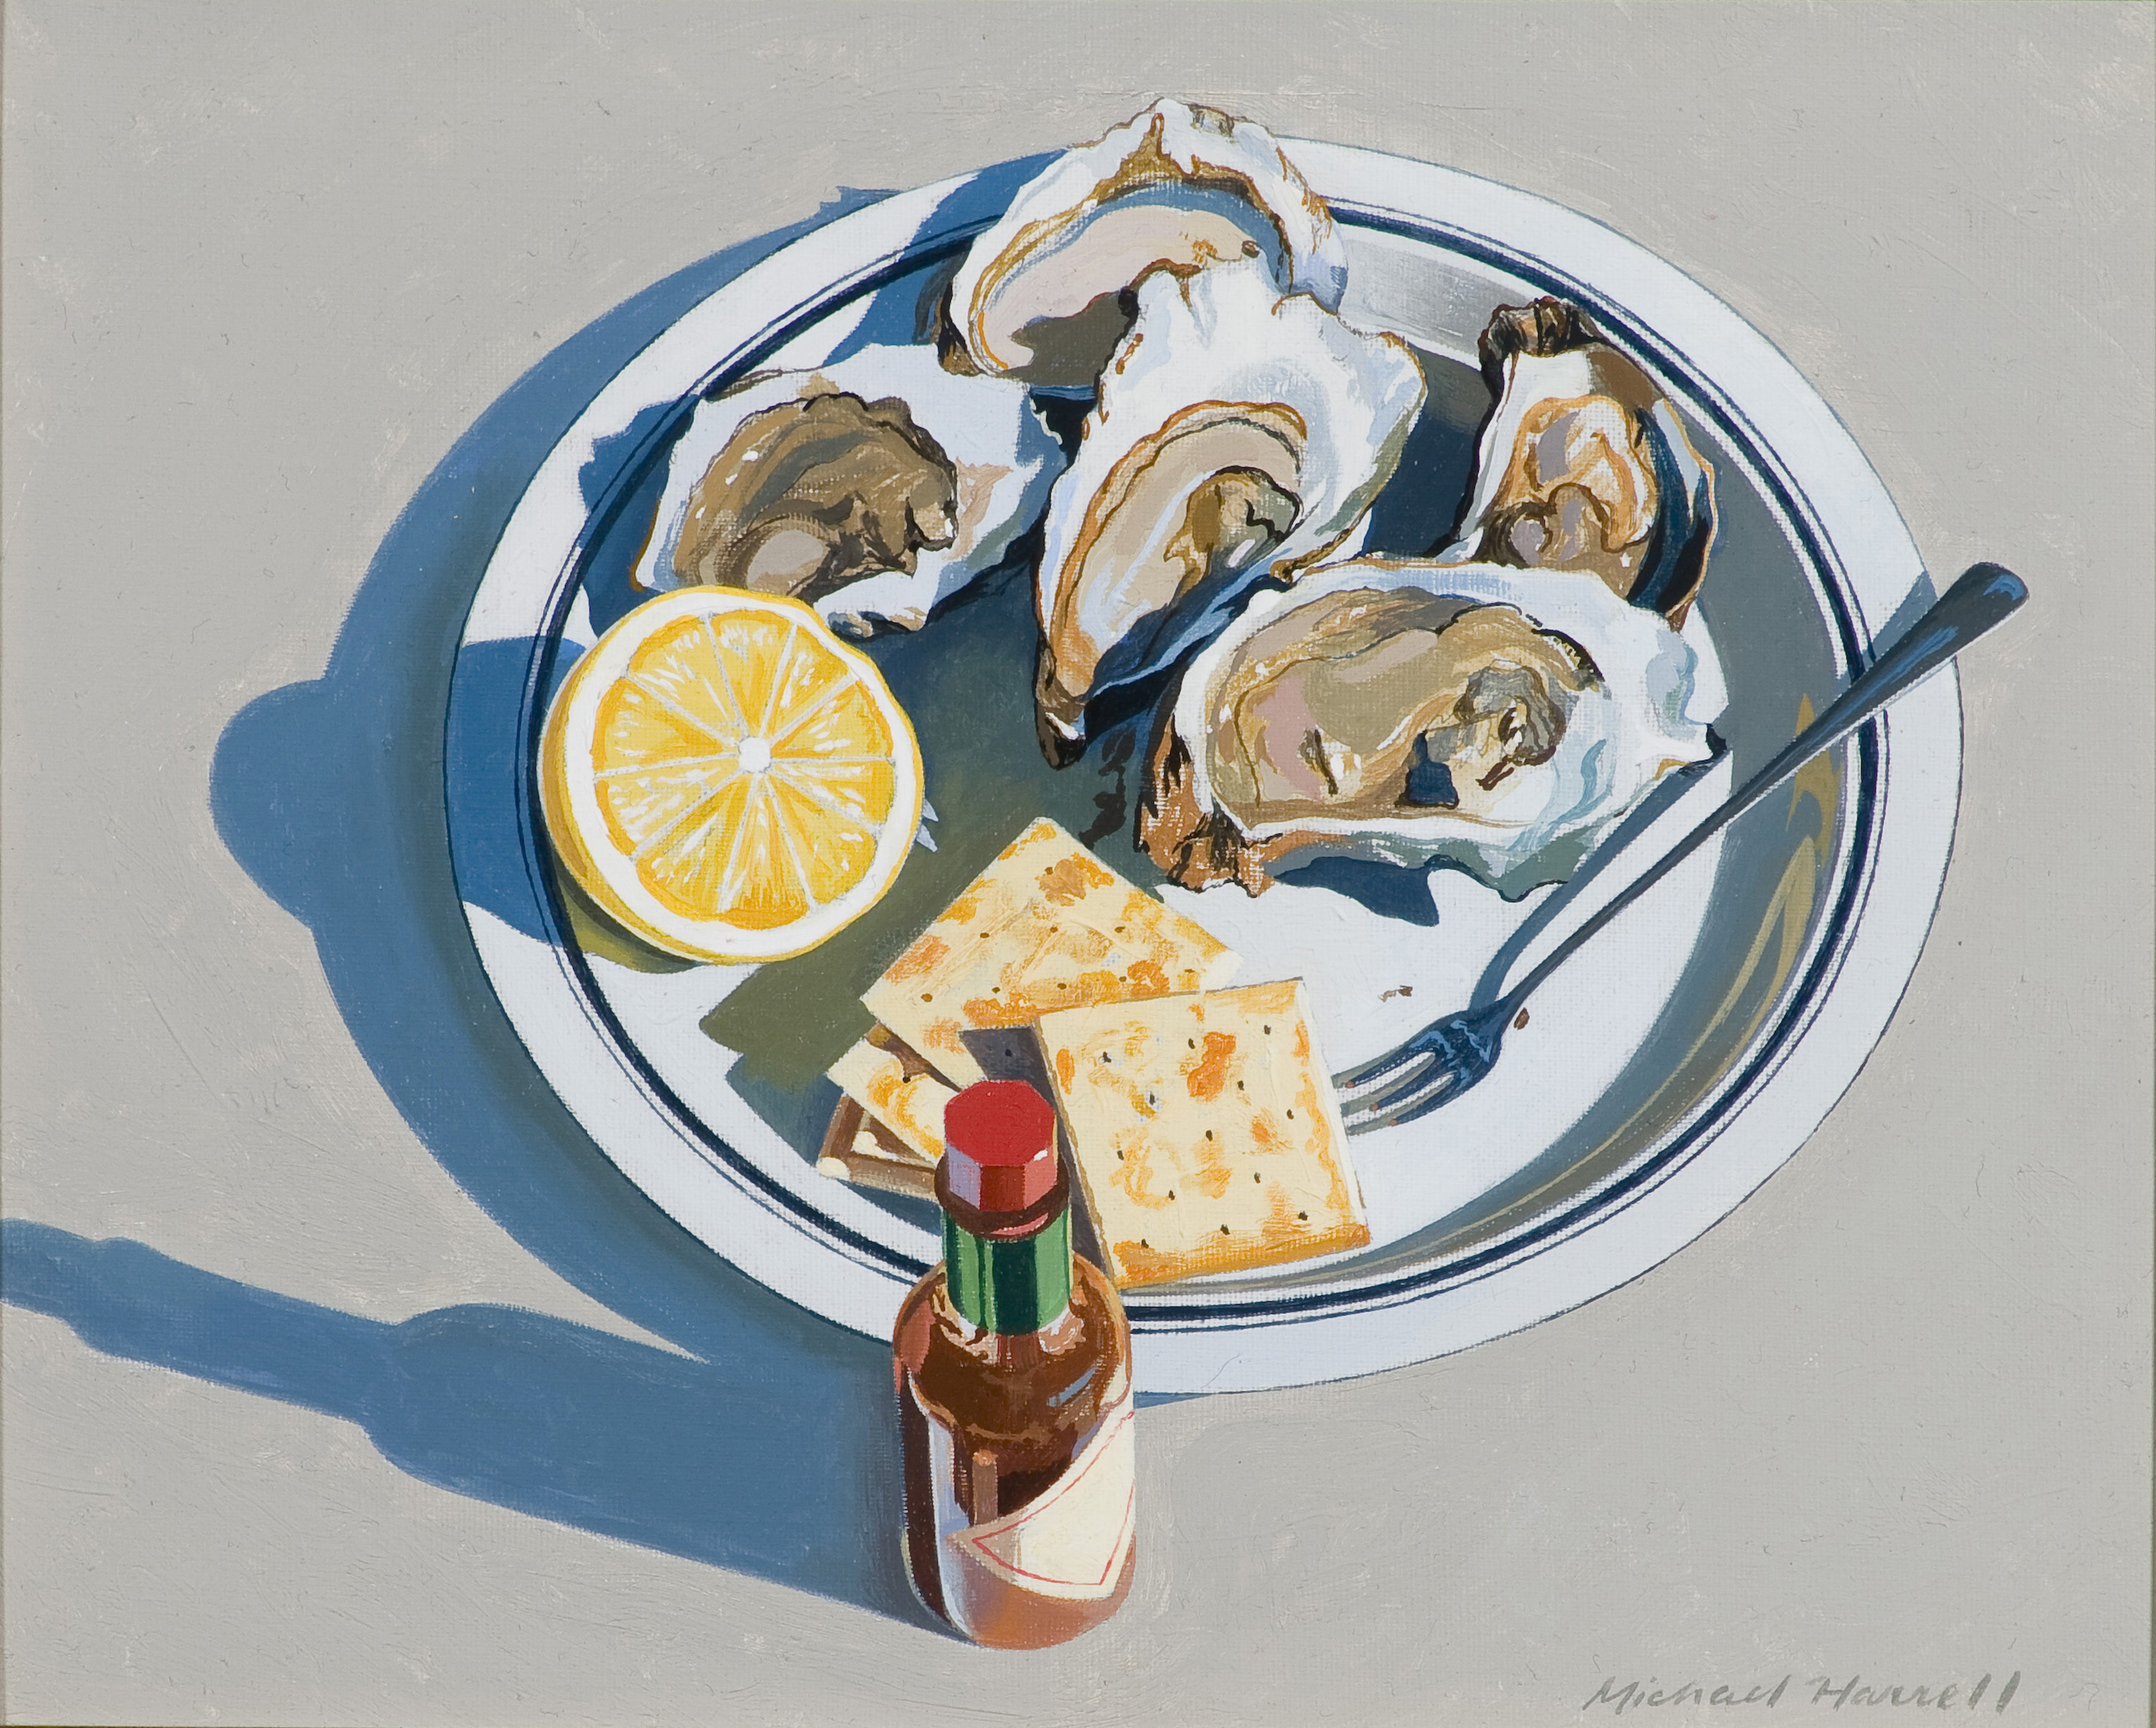 Michael Harrell, Oysters on the Half Shell